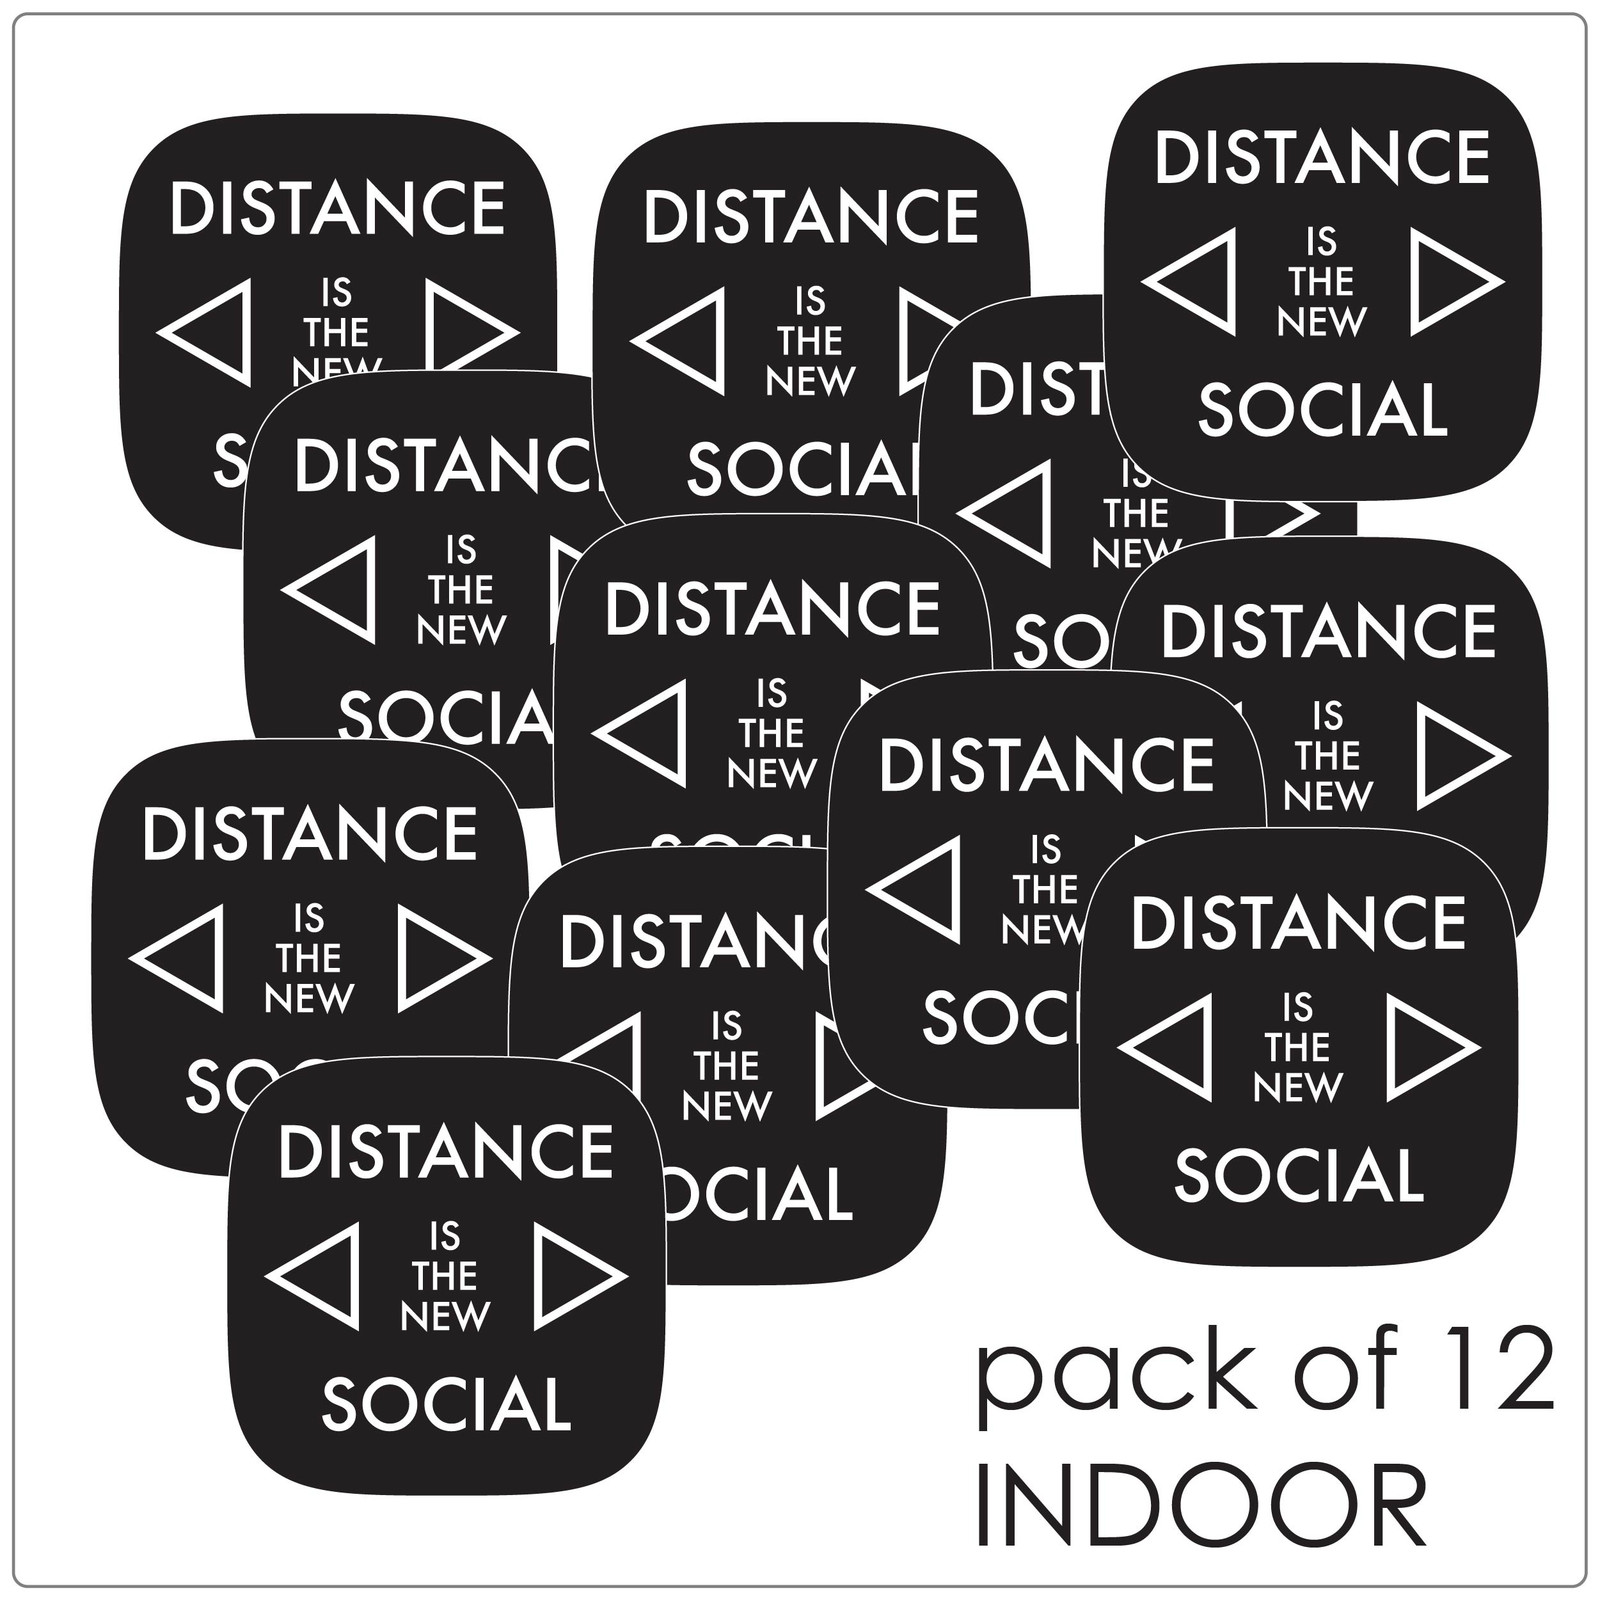 social distancing floor marker for hard floors, pack of 12, contemporary, black Self-adhesive Corona virus floor marker to help social distancing